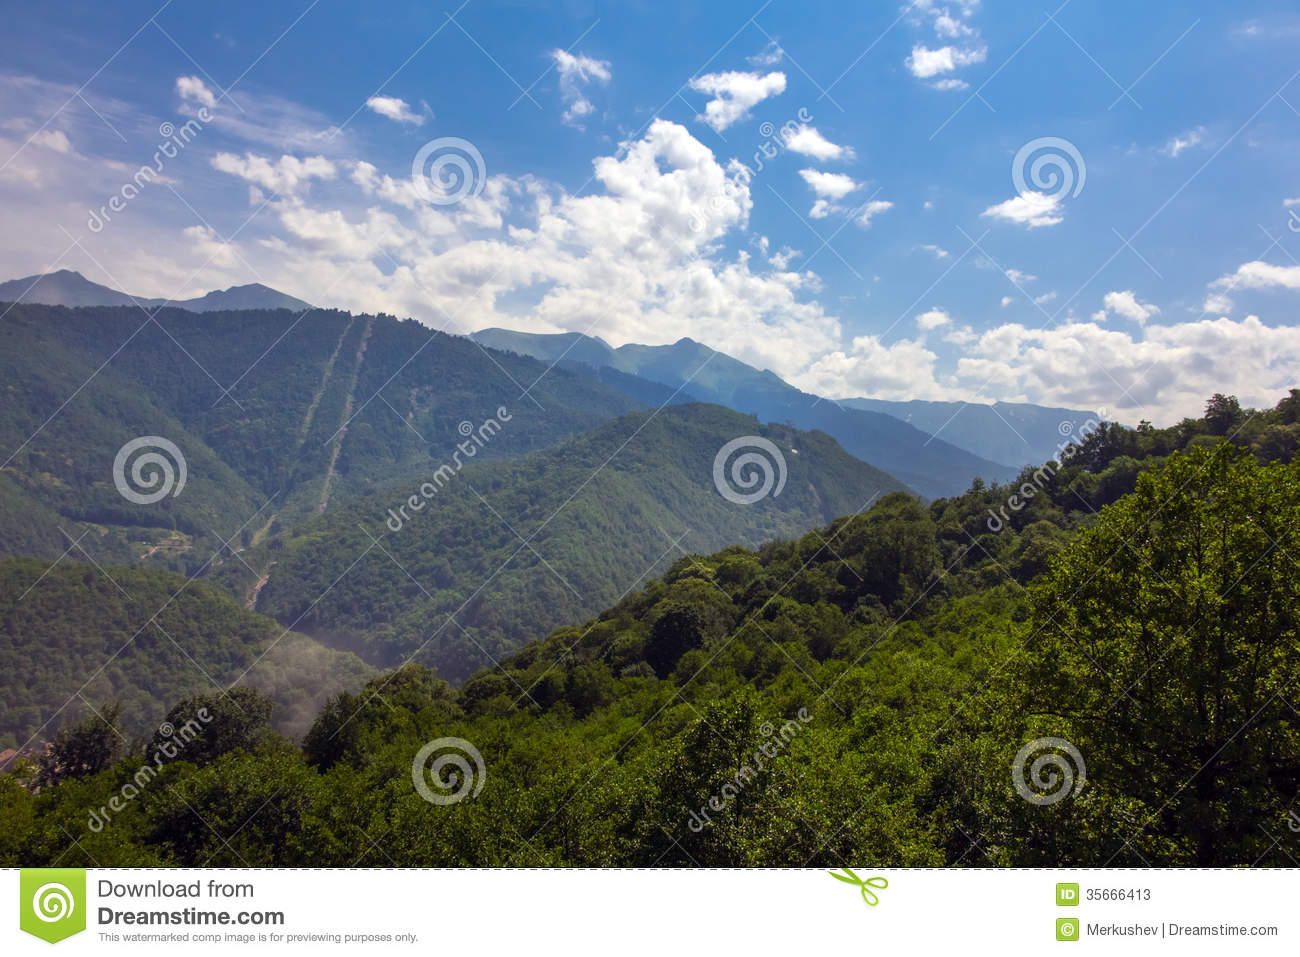 Krasnaya Polyana Russia  City pictures : Mountains Of Krasnaya Polyana. Sochi, Russia. Stock Photos Image ...